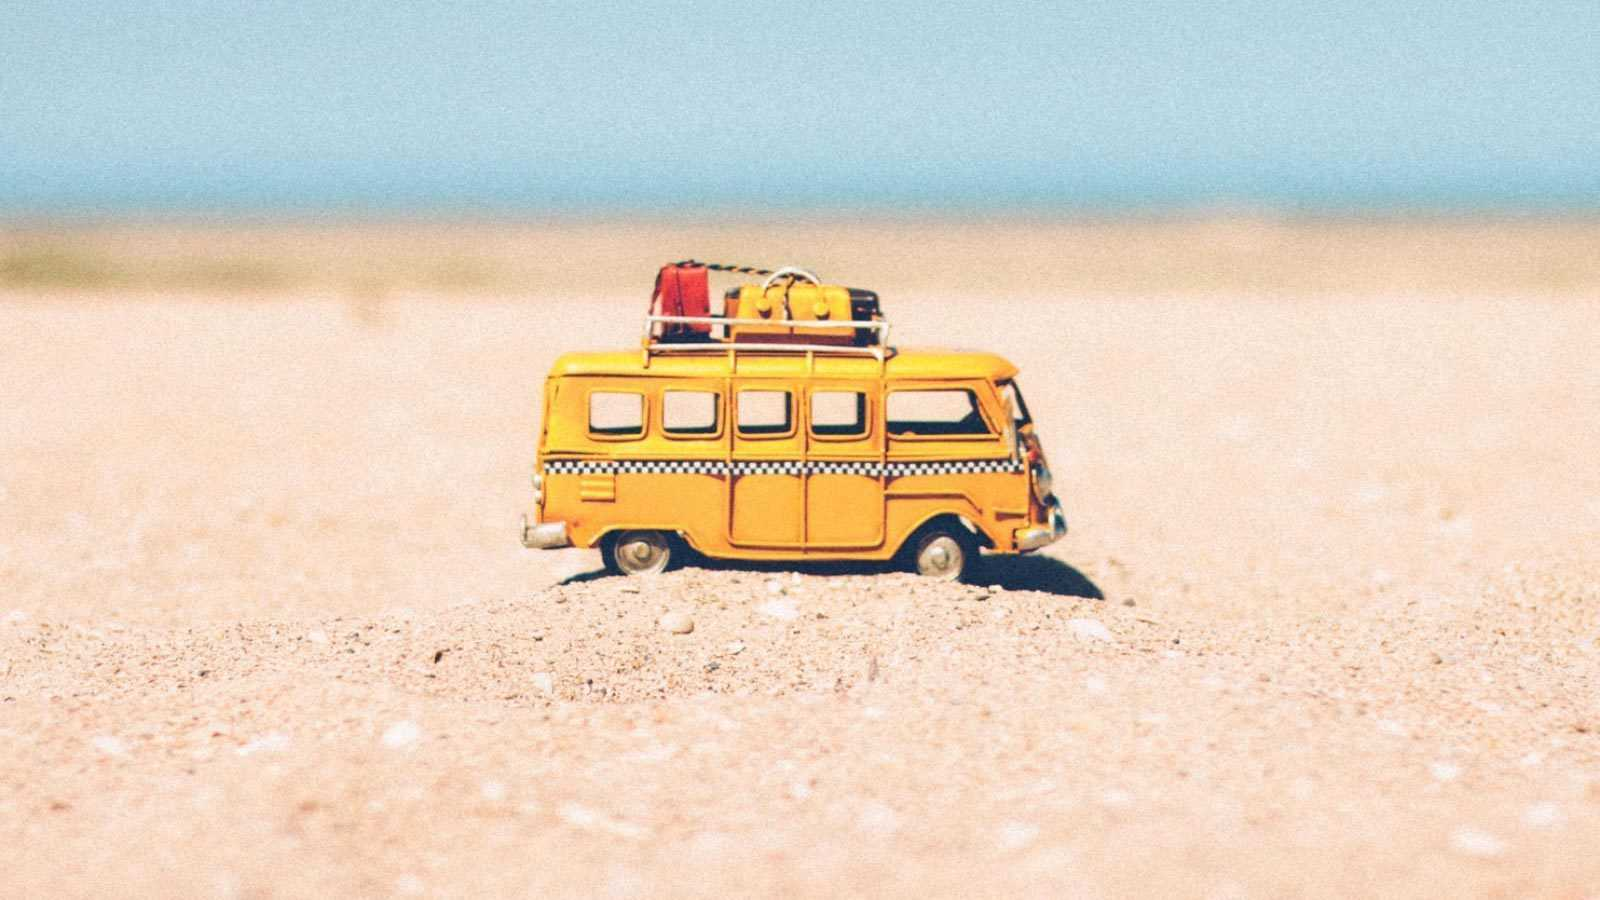 A toy camper van on the beach